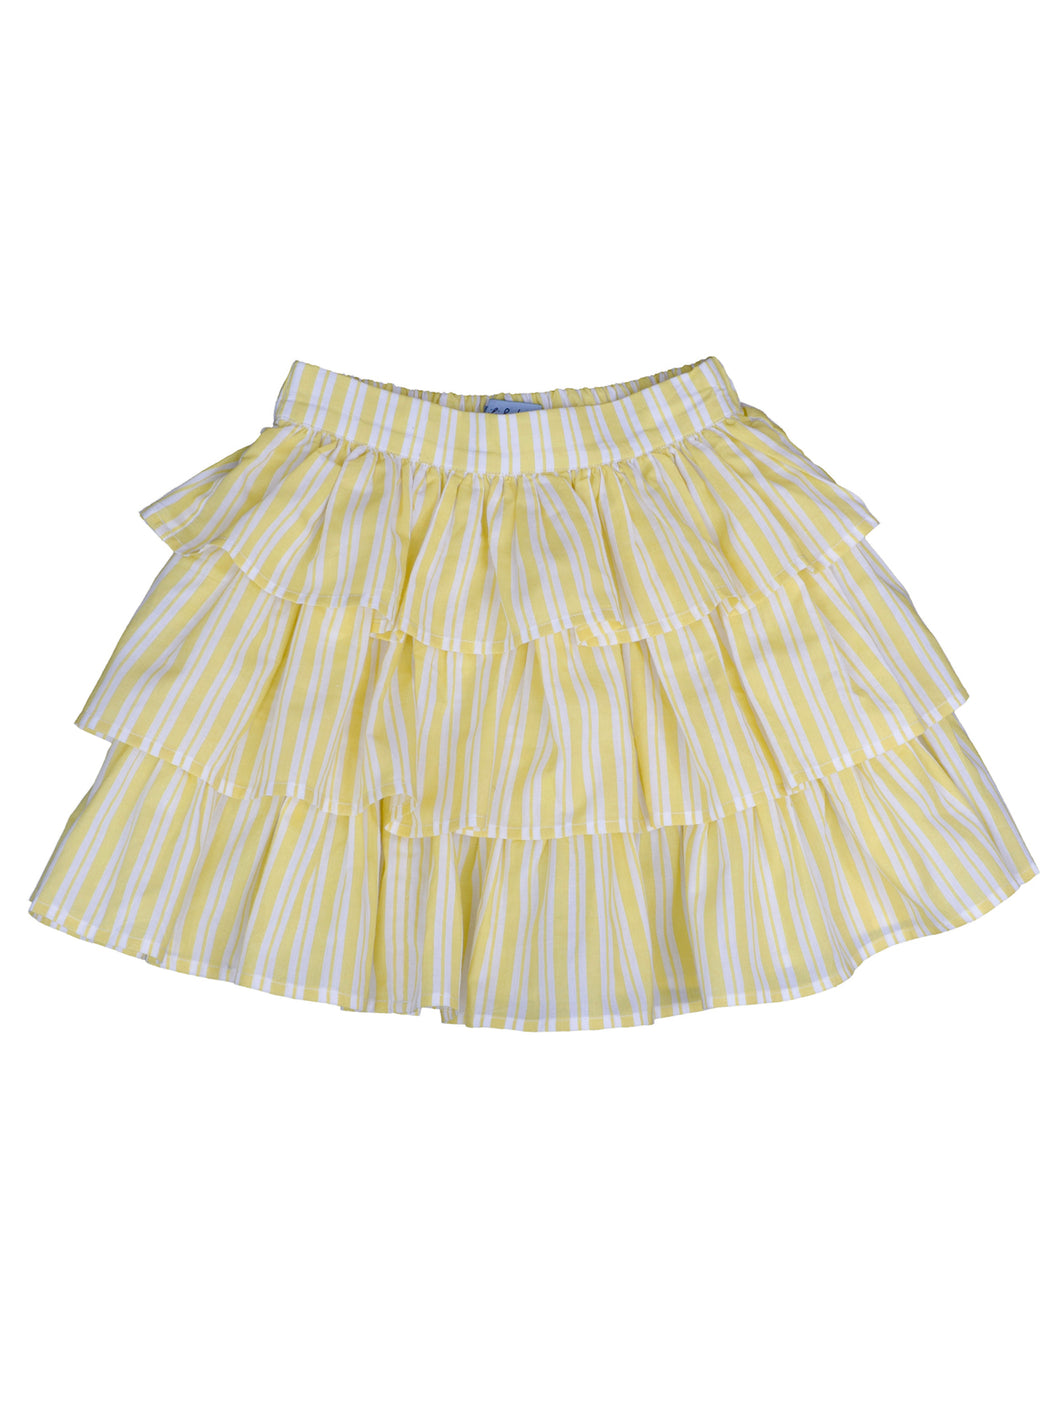 Elif skirt, corn stripe